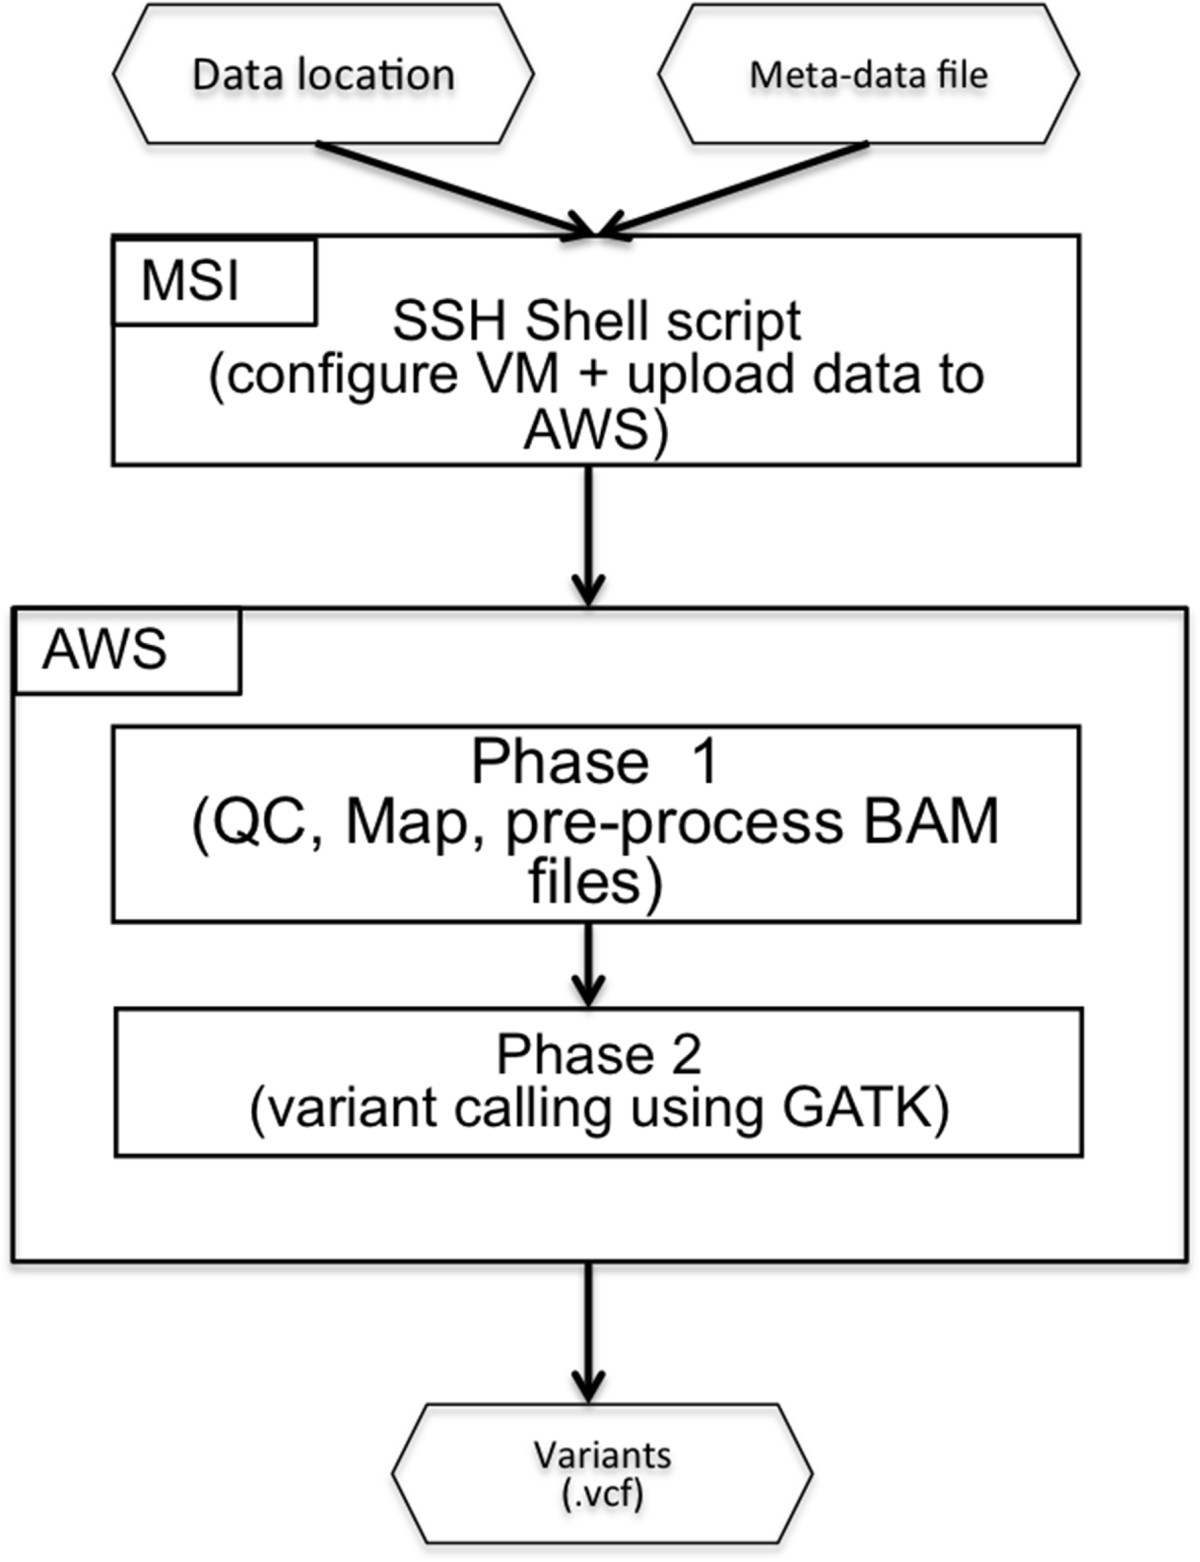 https://static-content.springer.com/image/art%3A10.1186%2F1756-0500-7-314/MediaObjects/13104_2013_Article_2839_Fig1_HTML.jpg